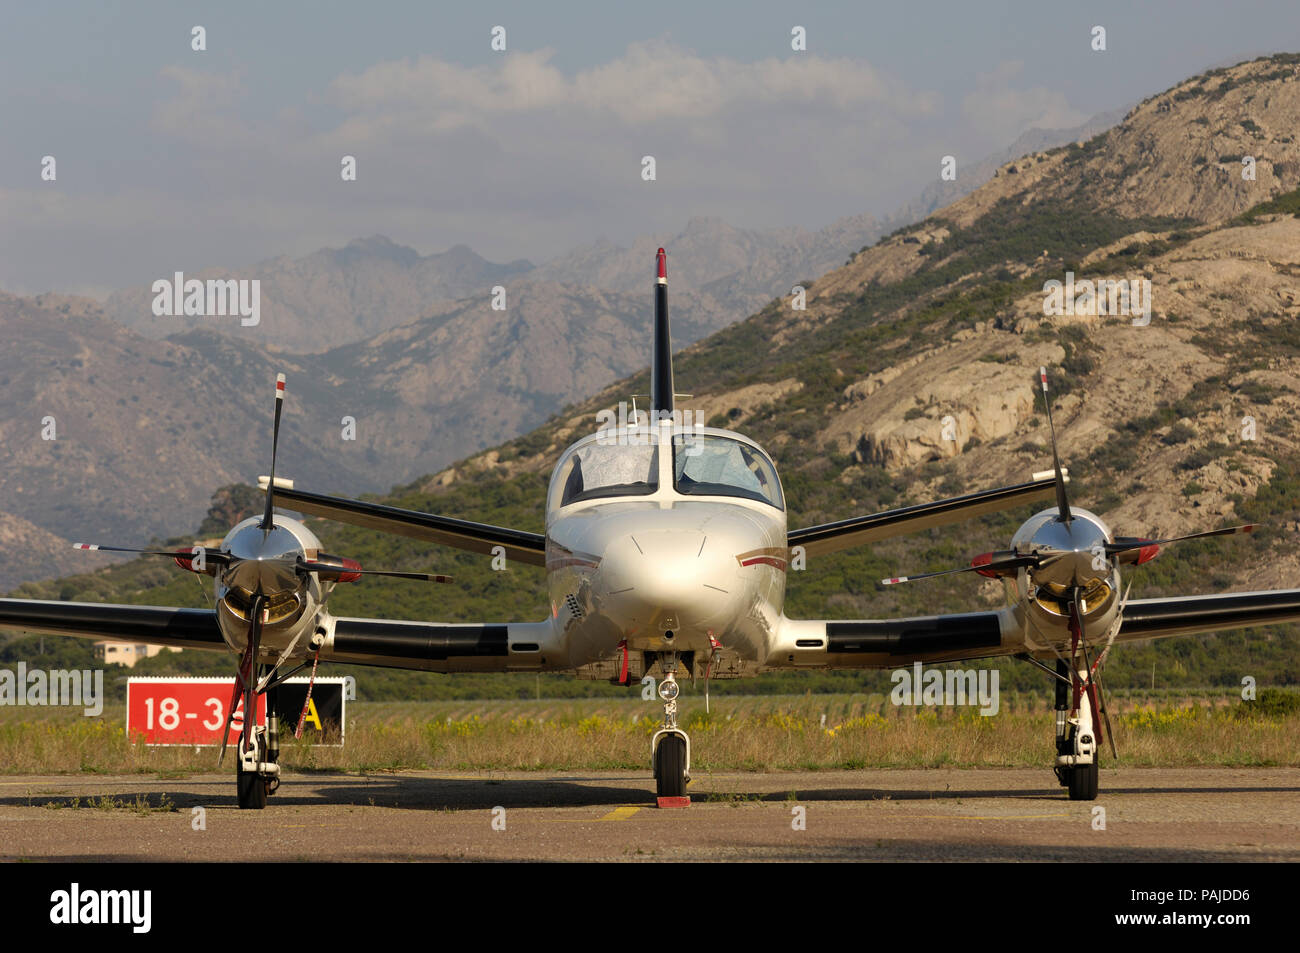 propellers, nosewheel undercarriage and windshield of a Cessna 425 Corsair/Conquest 1 parked Stock Photo